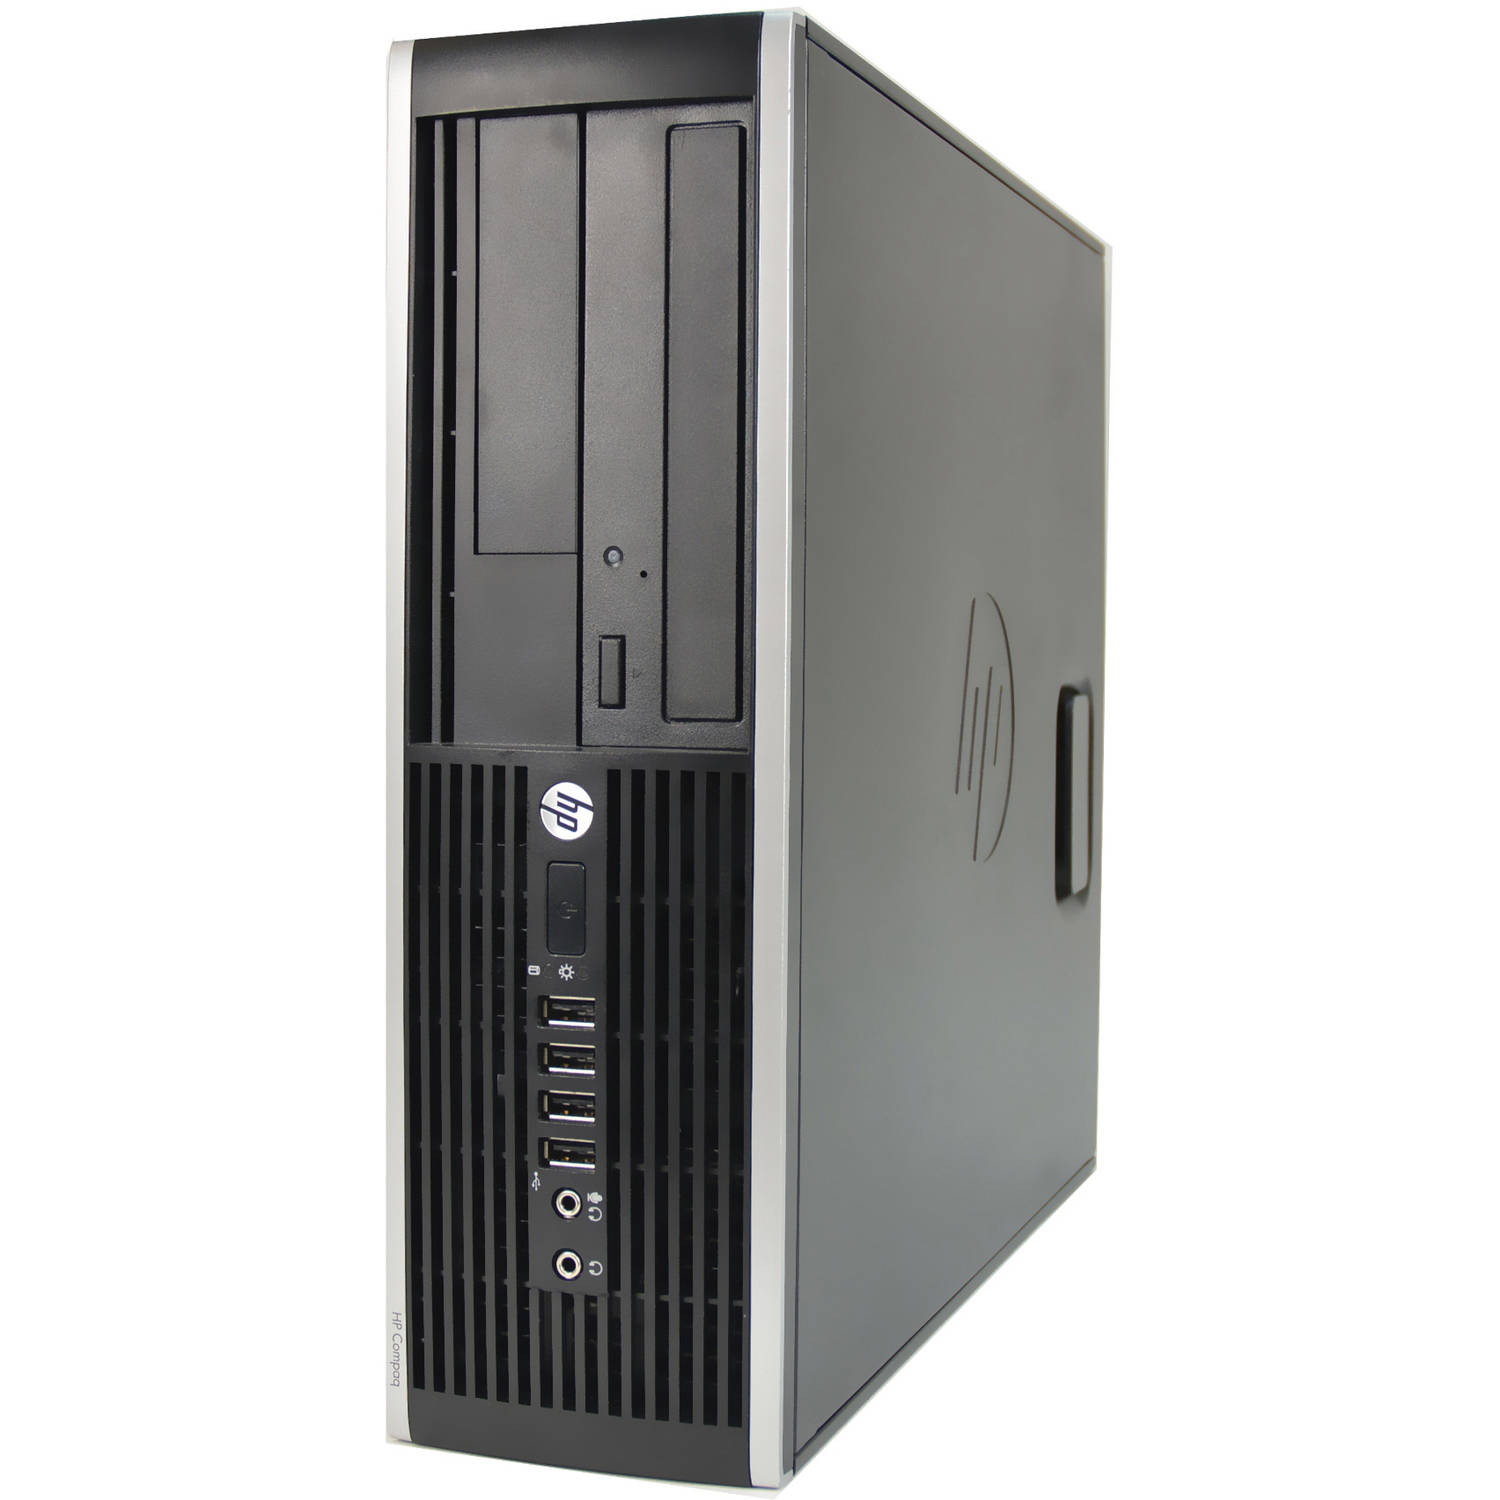 Refurbished HP 8200 Elite Desktop PC with Intel Core i5 Processor, 4GB Memory, 250